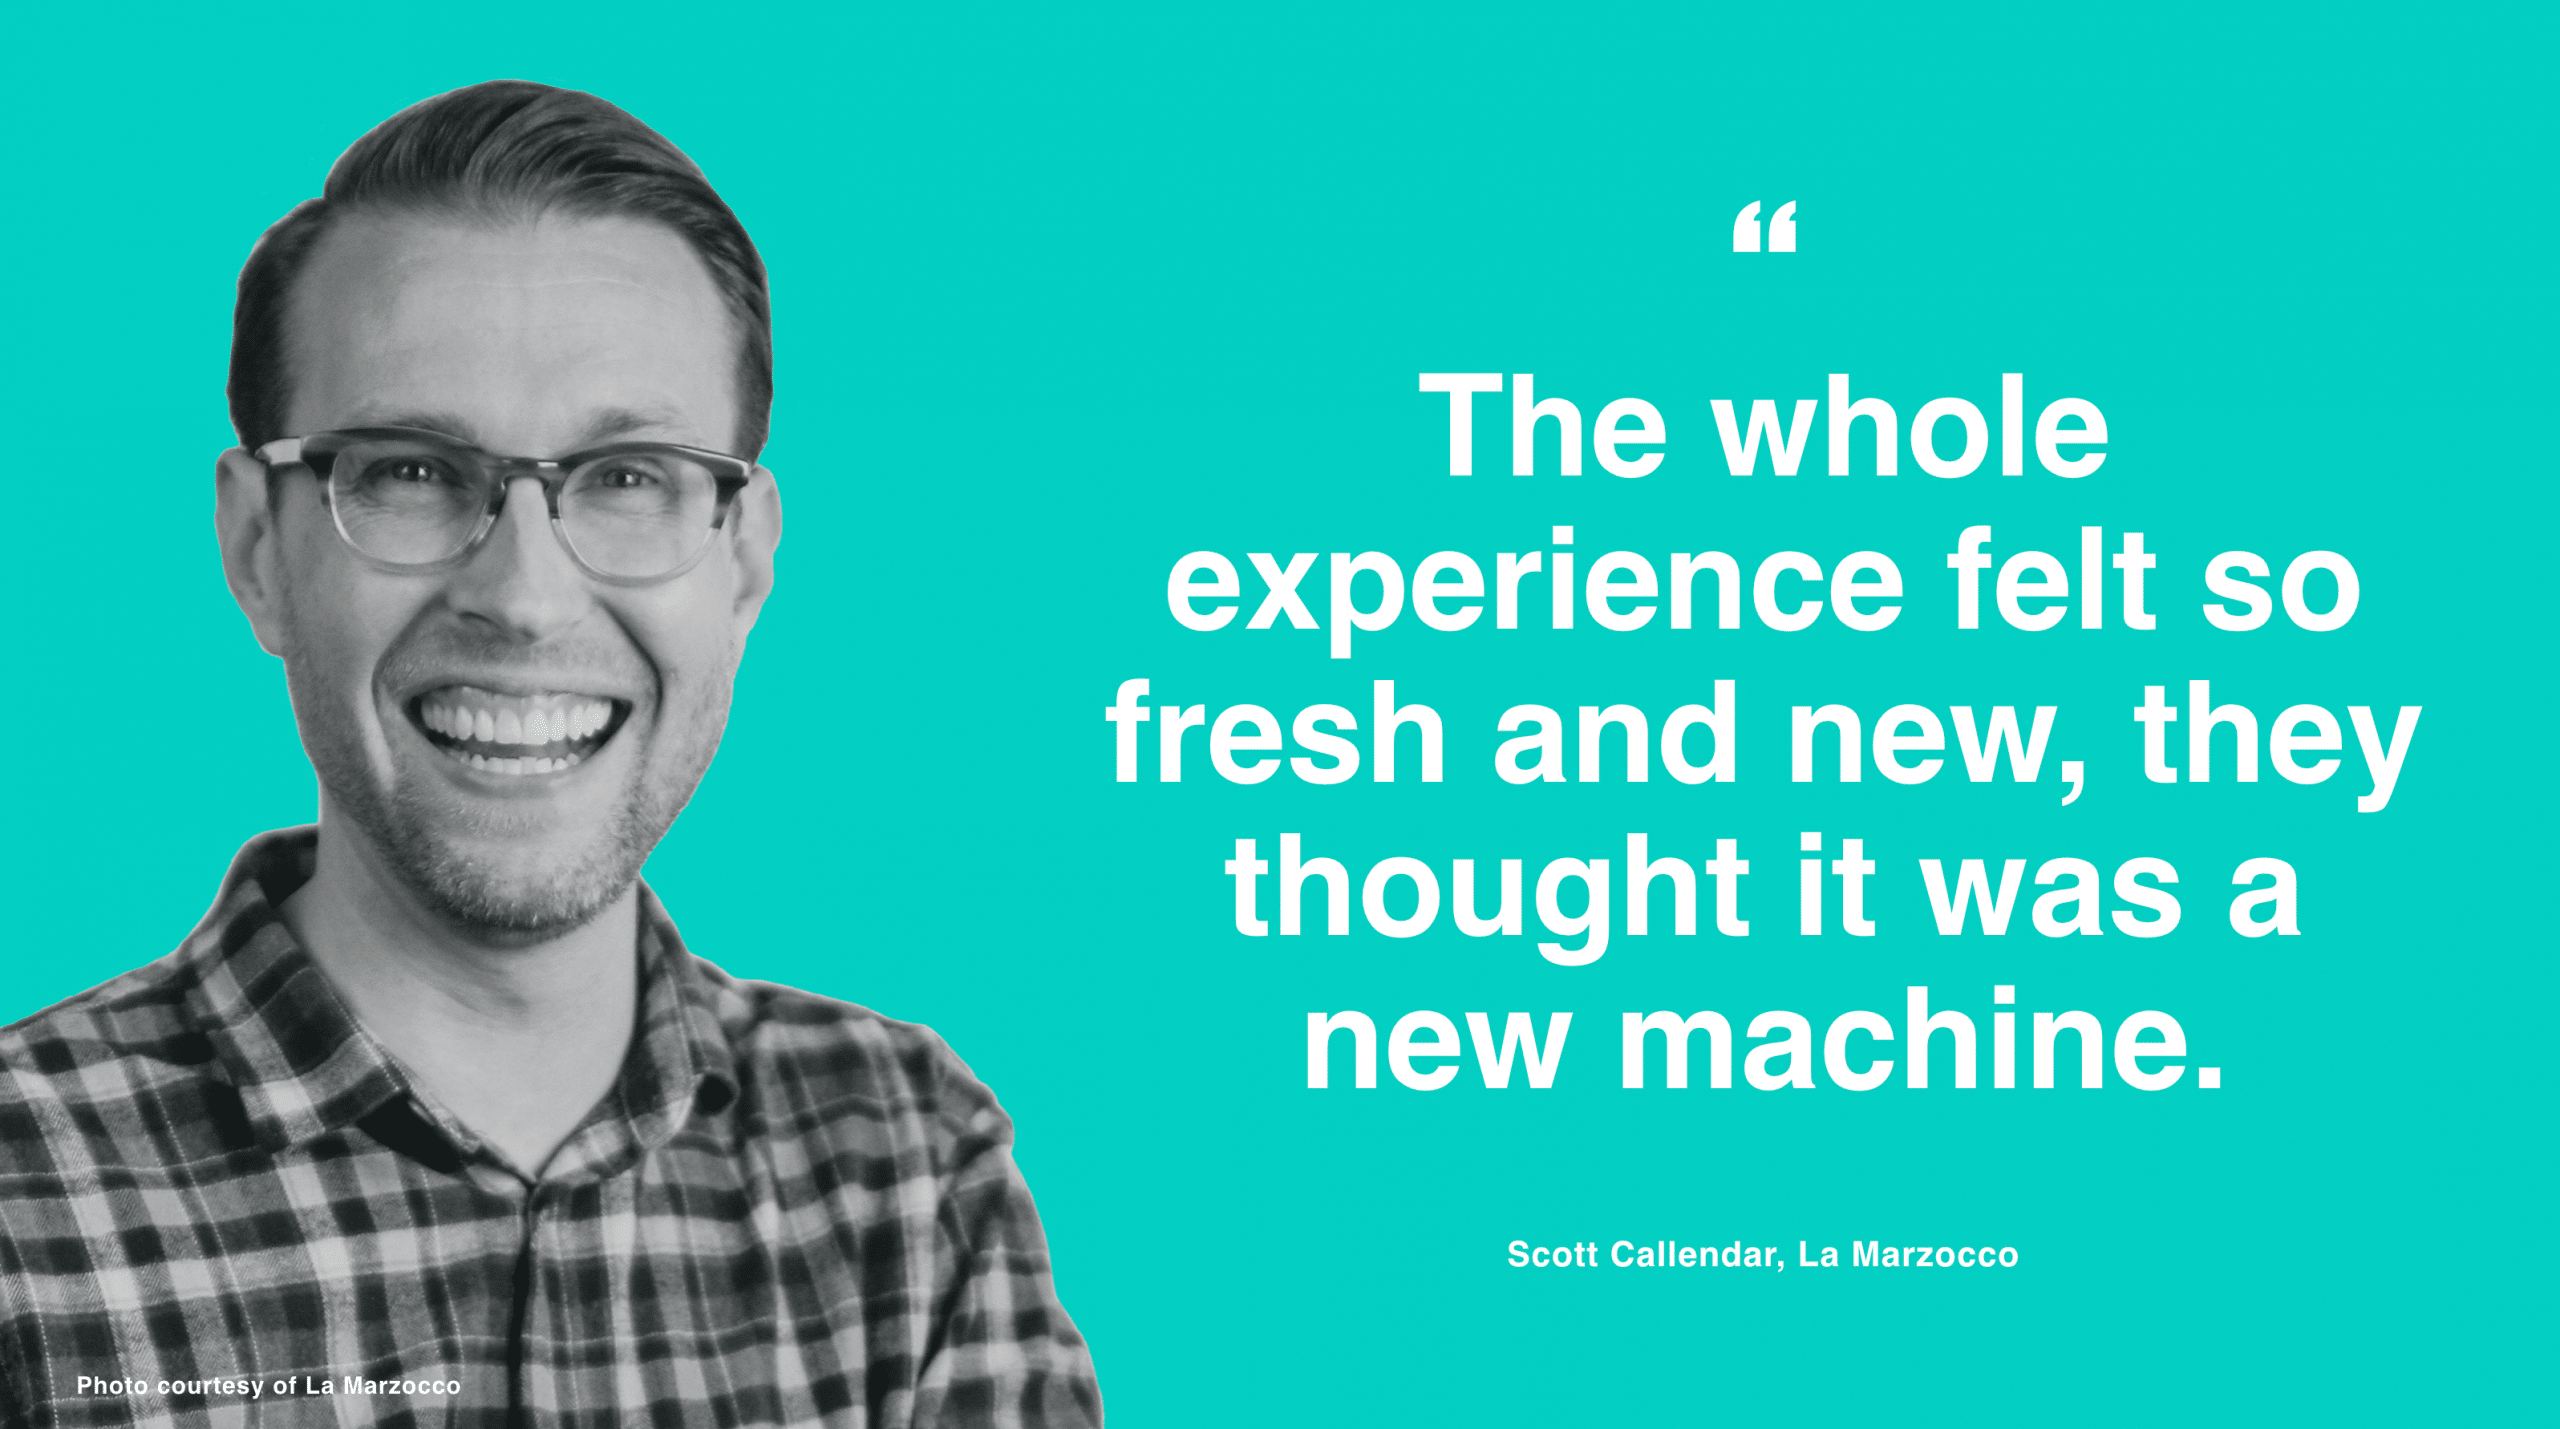 """""""The whole experience felt so fresh and new, they thought it was a new machine."""" - Scott Callendar"""